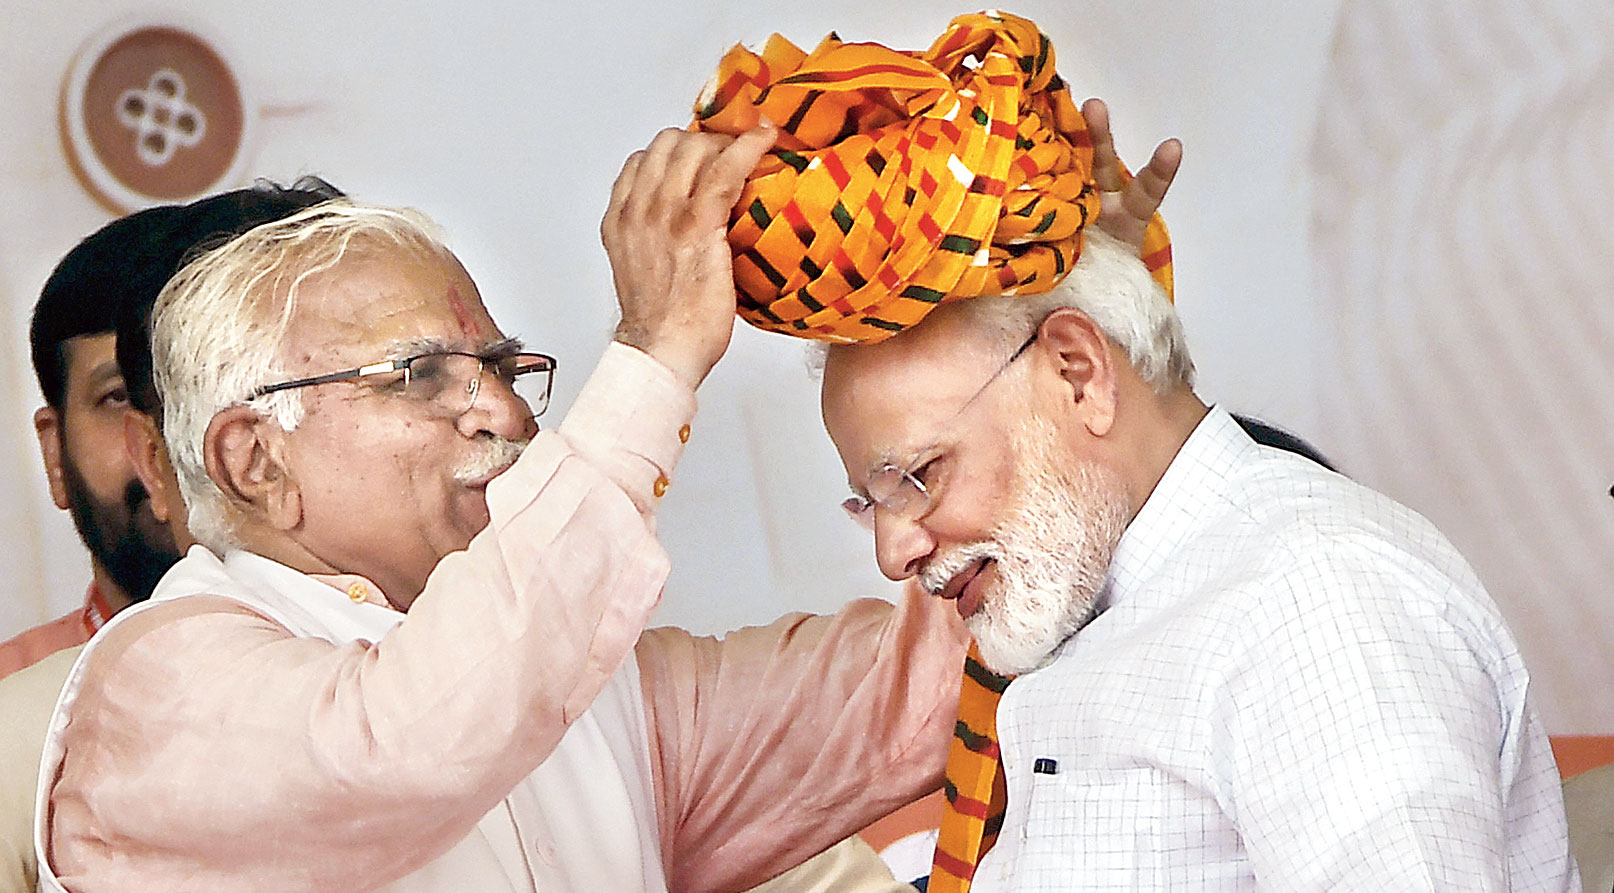 Haryana chief minister Manohar Lal Khattar presents a turban to Prime Minister Narendra Modi in Rohtak. The Congress also recalled that Khattar had publicly said after the revocation of Kashmir's special status that women from there could now be brought for marriage.